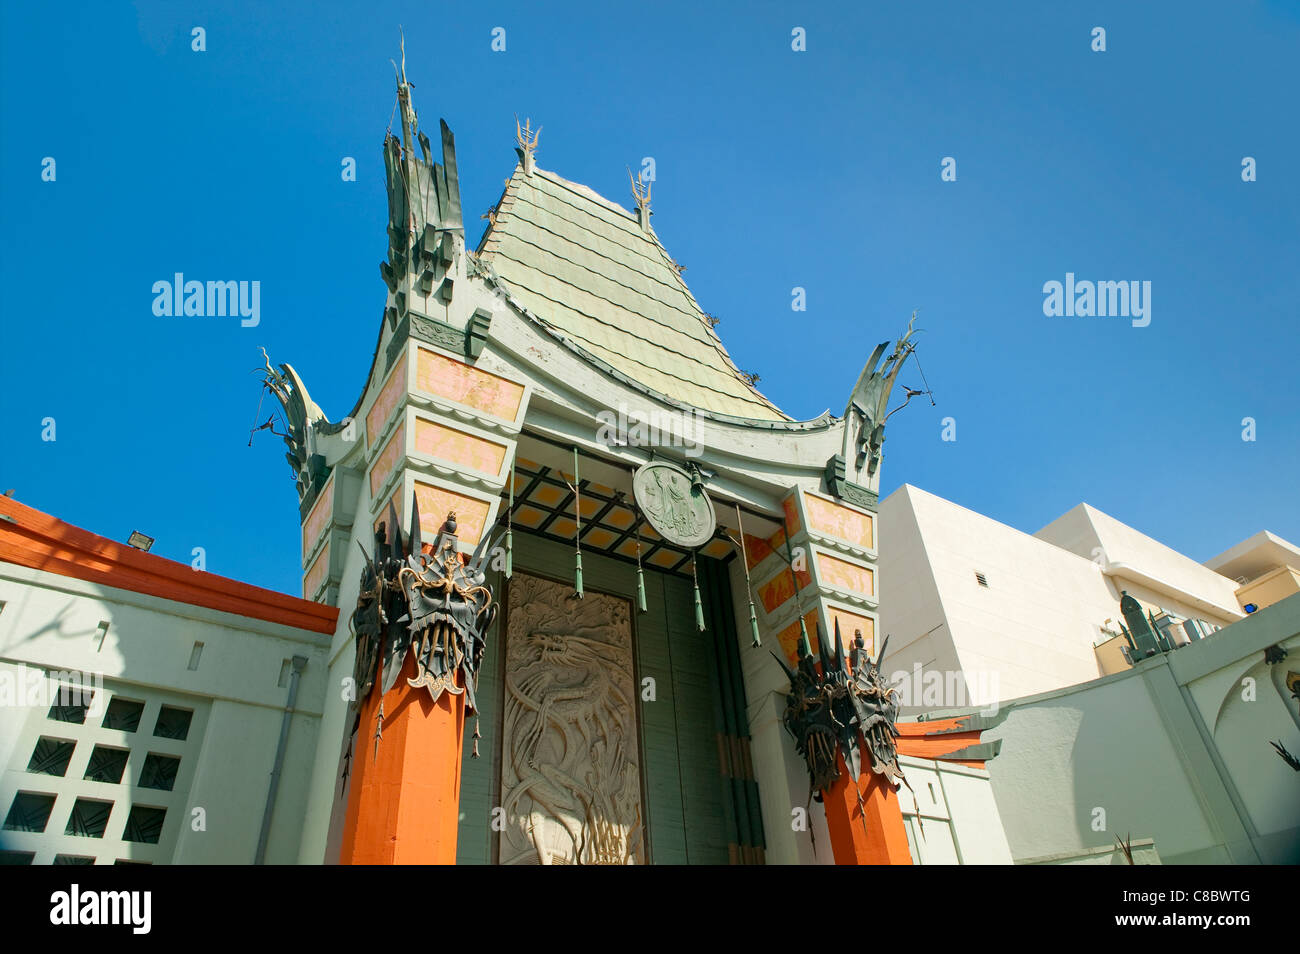 Grauman's Chinese Theater Hollywood - Stock Image